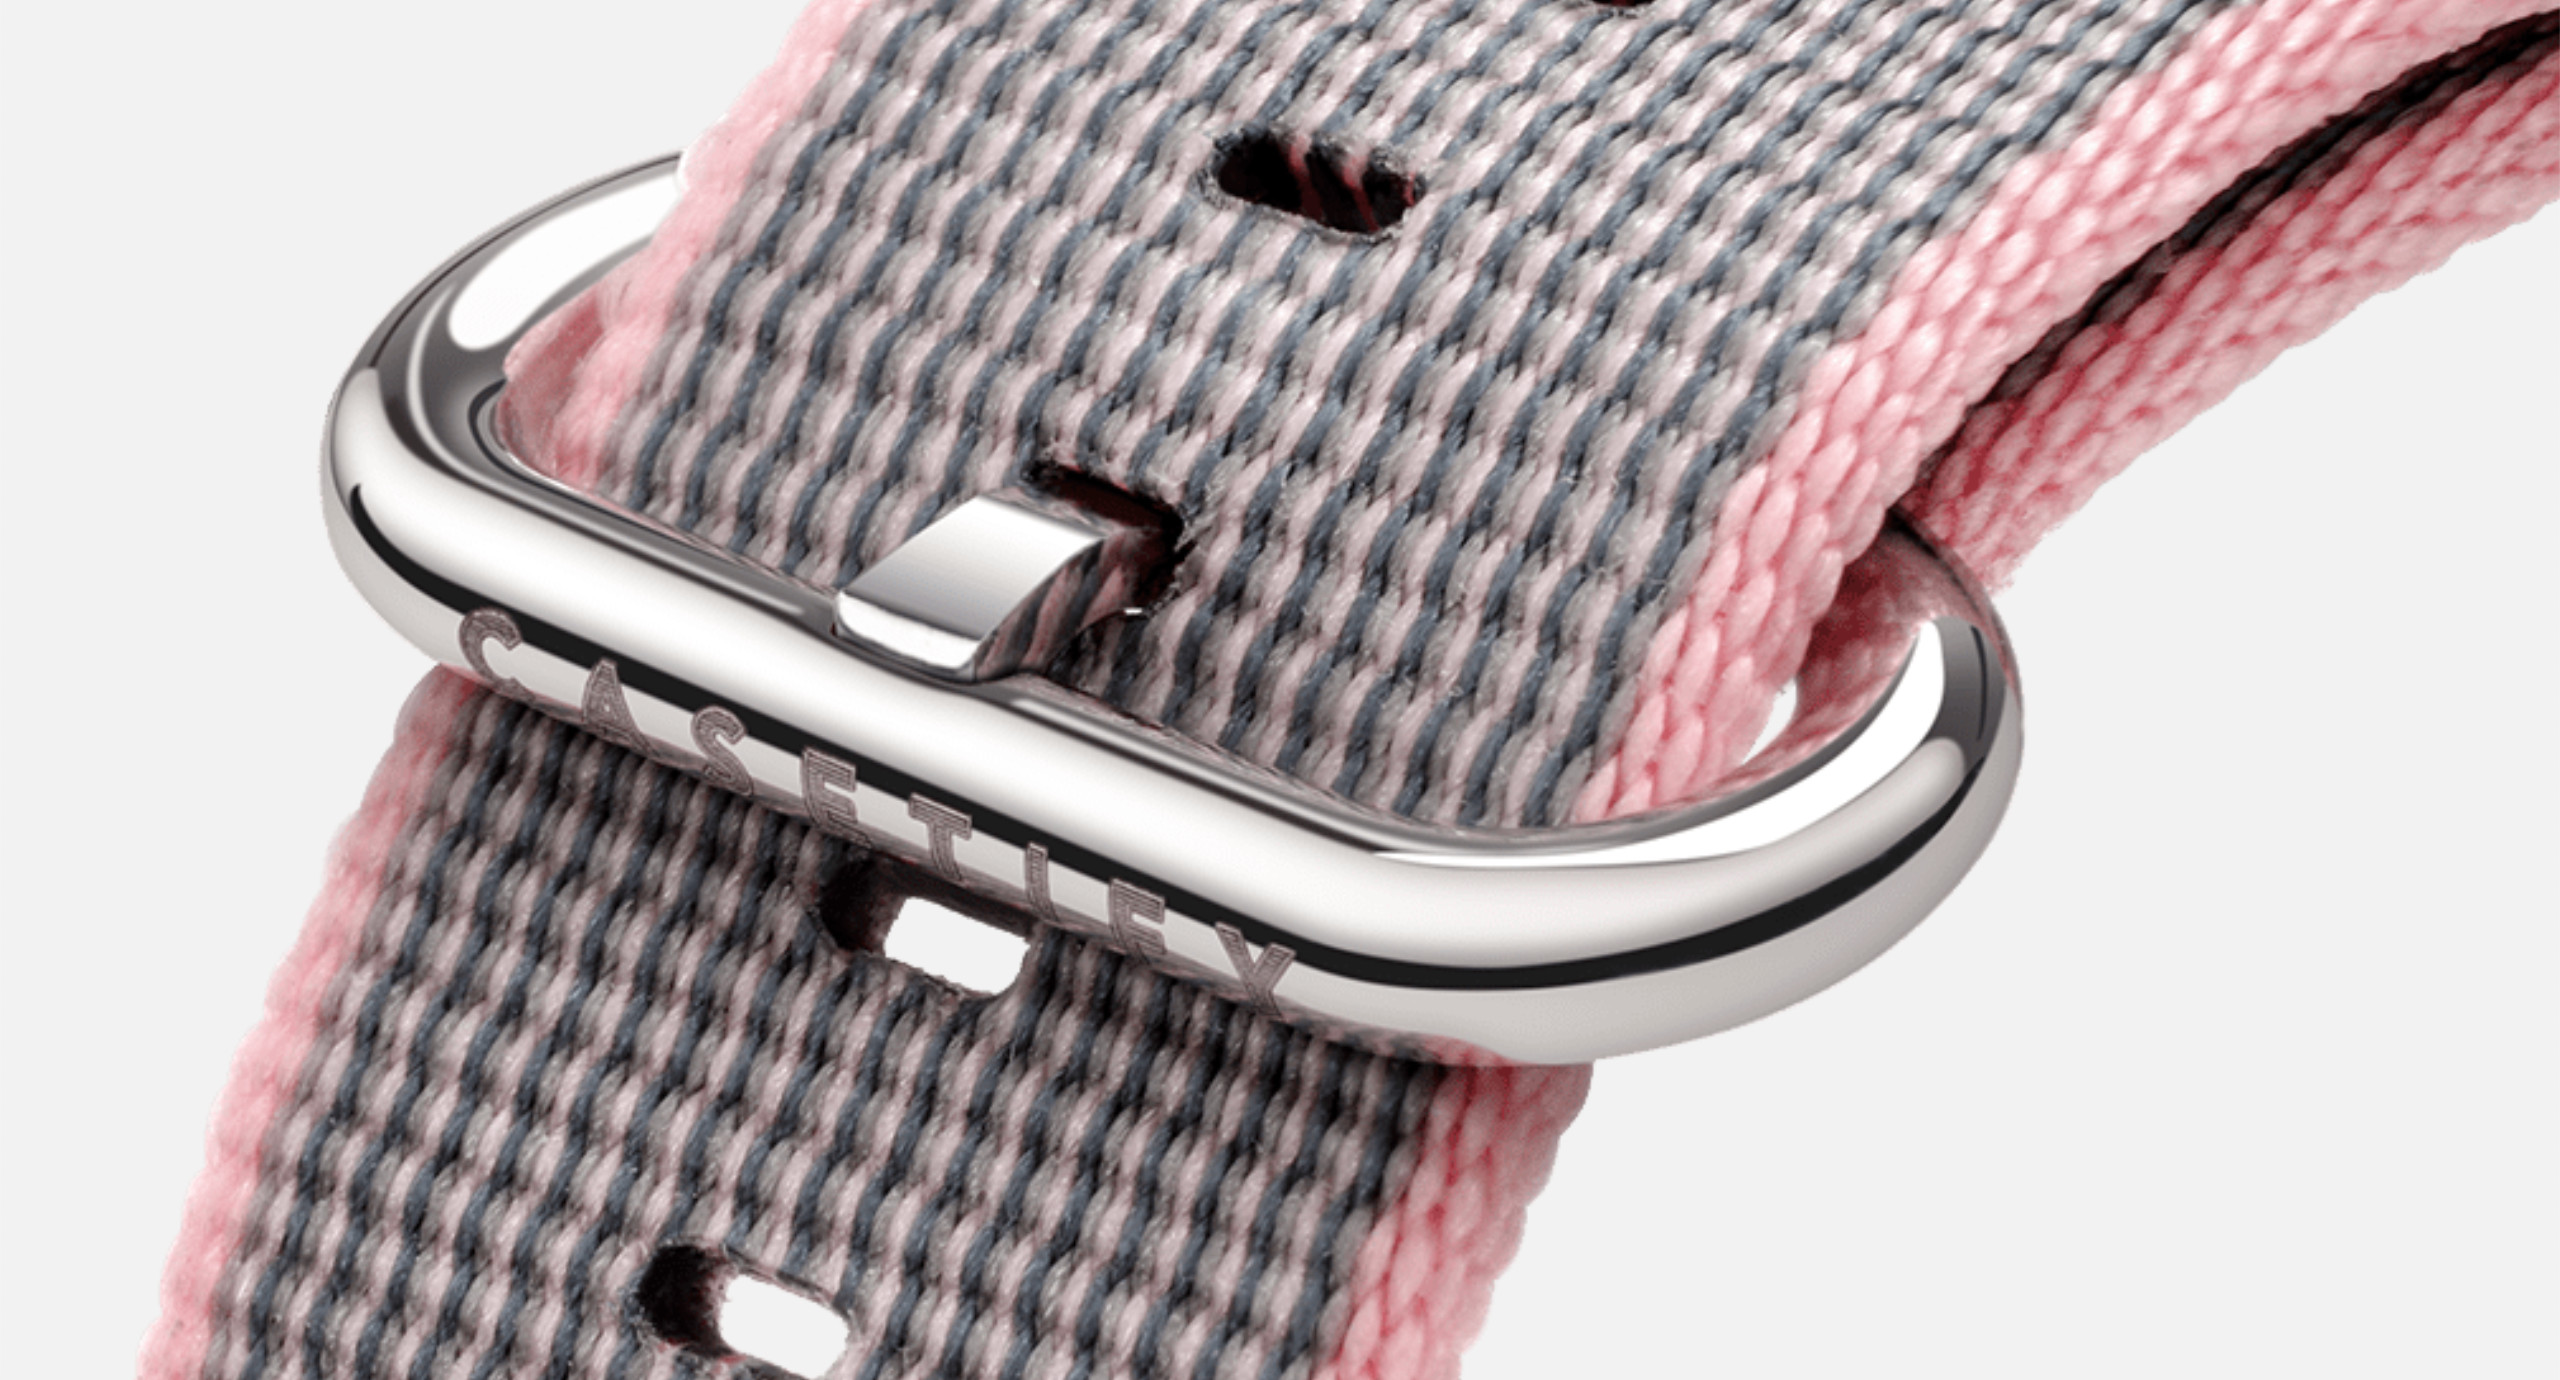 The stainless steel connector and buckle allow you to easily switch out Apple Watch bands and adjust the fit.